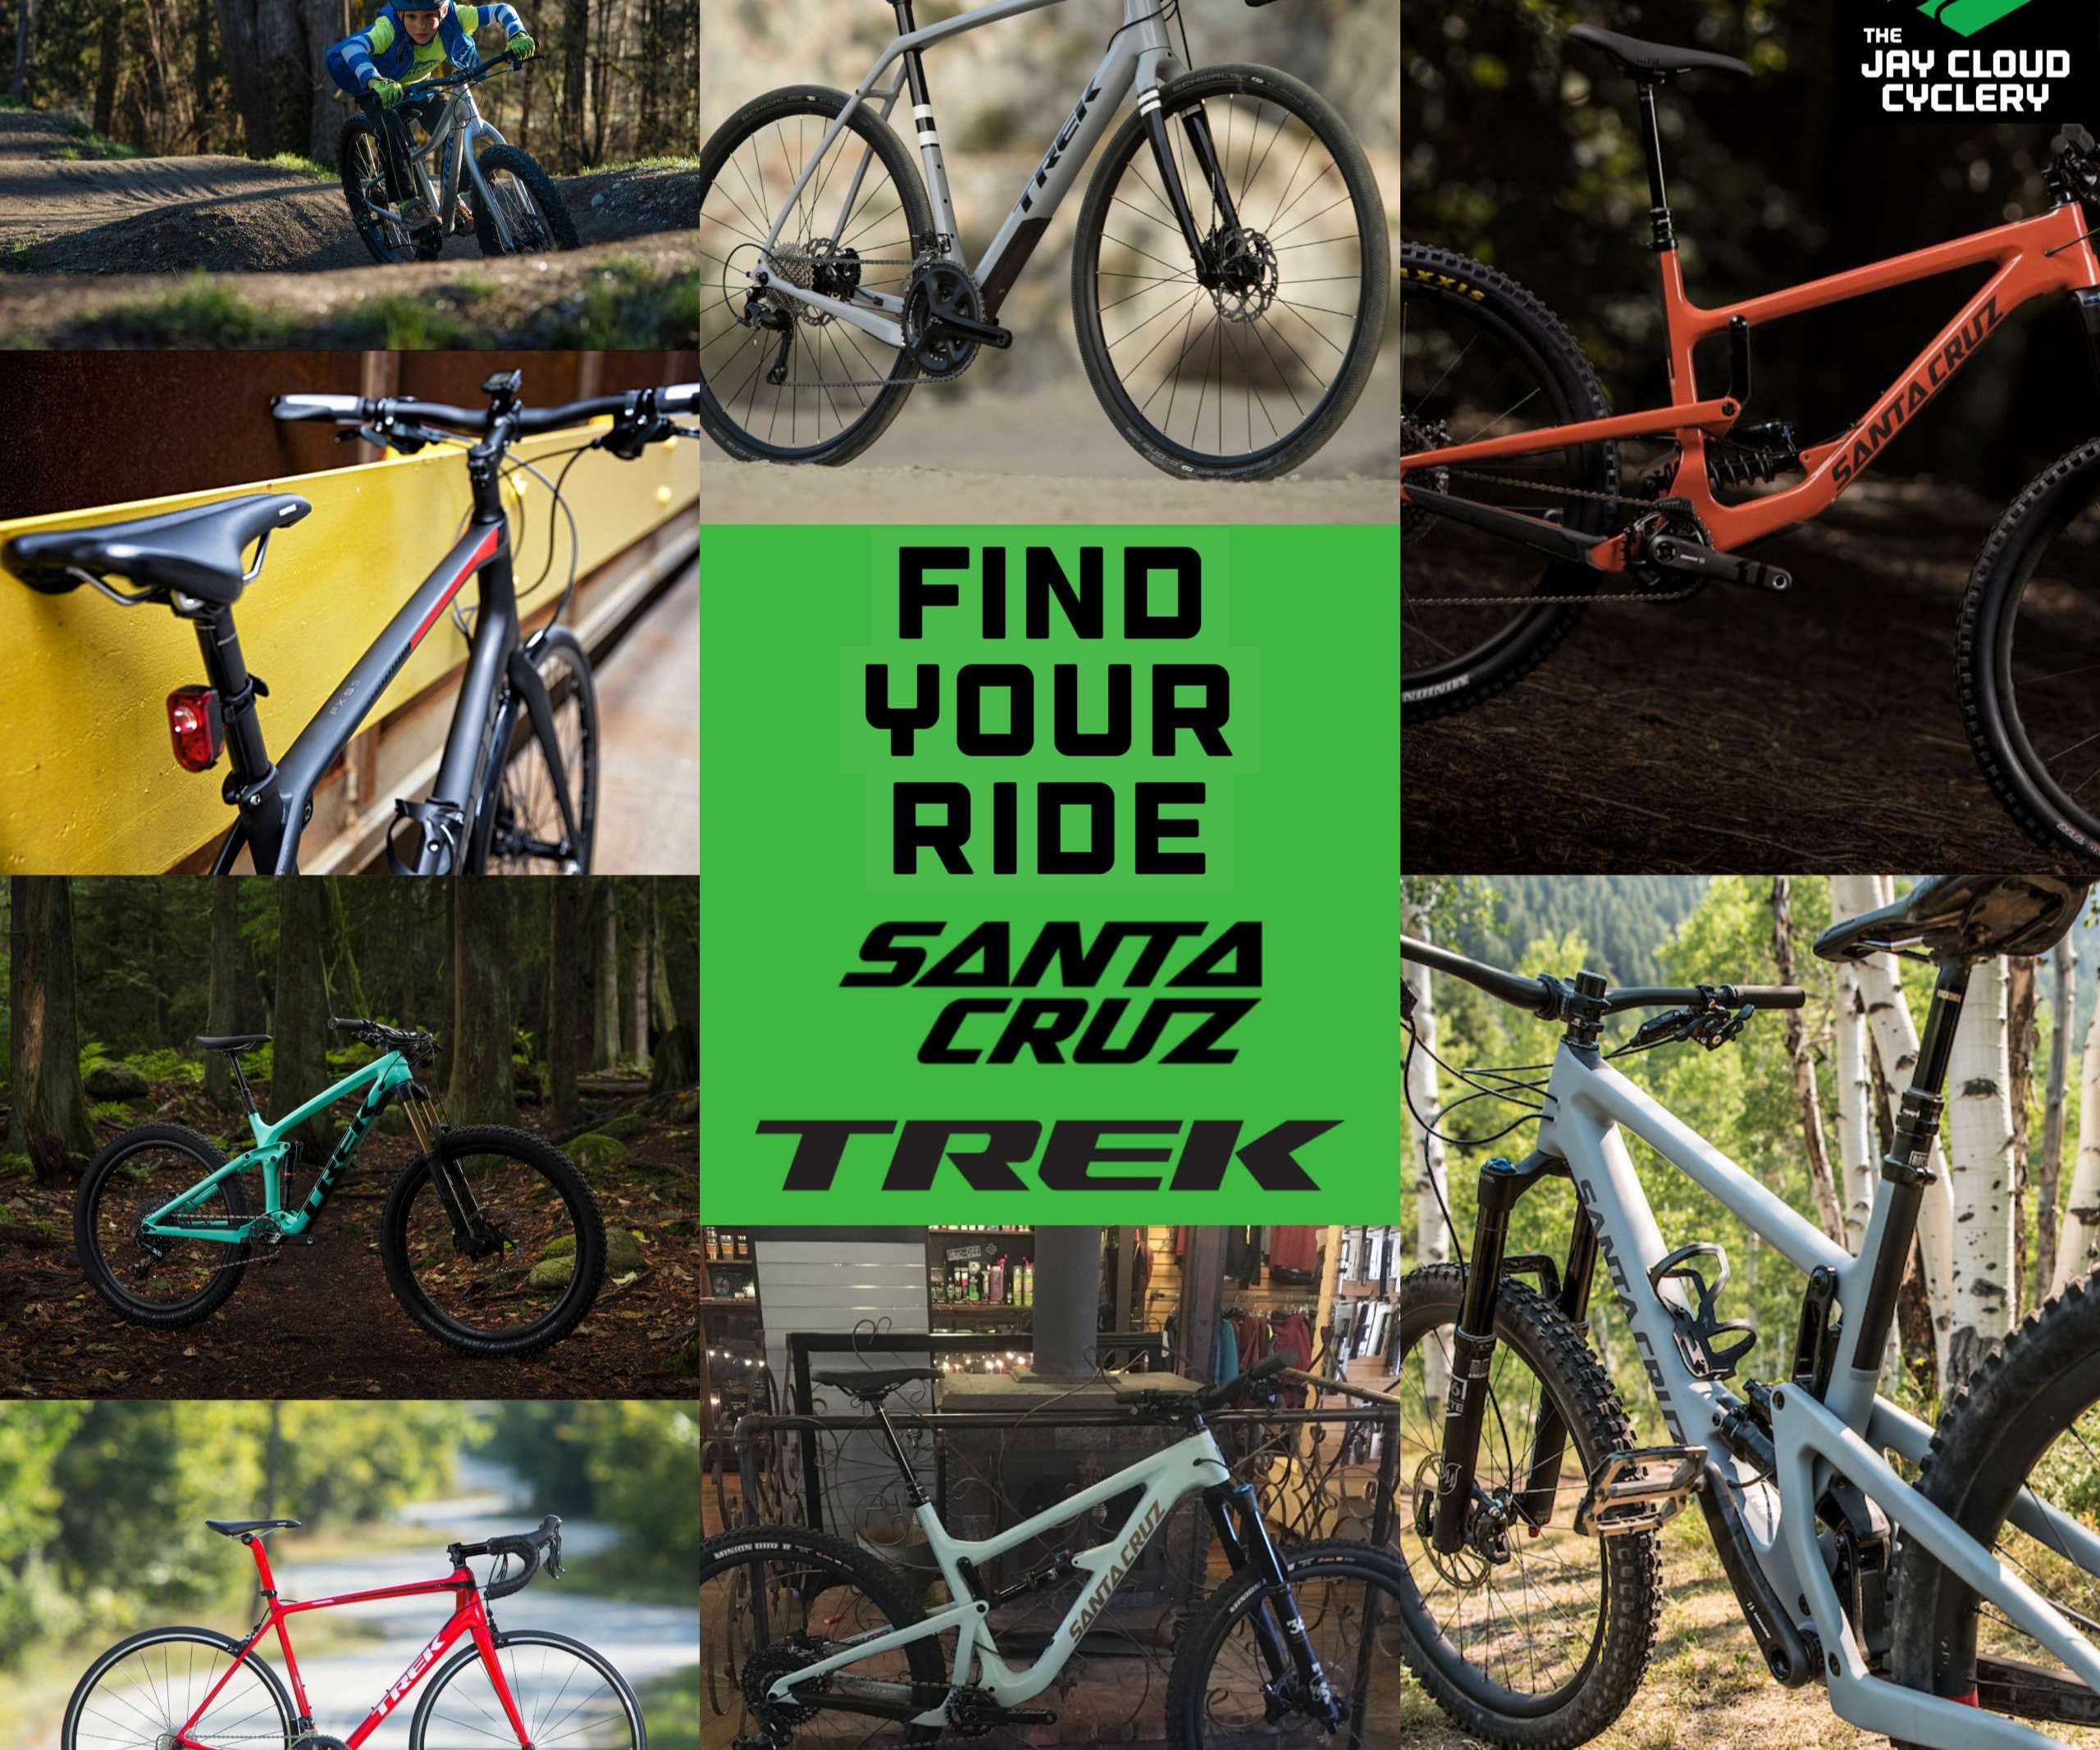 Quality & Value - Photo of Trek & Santa Cruz bikes